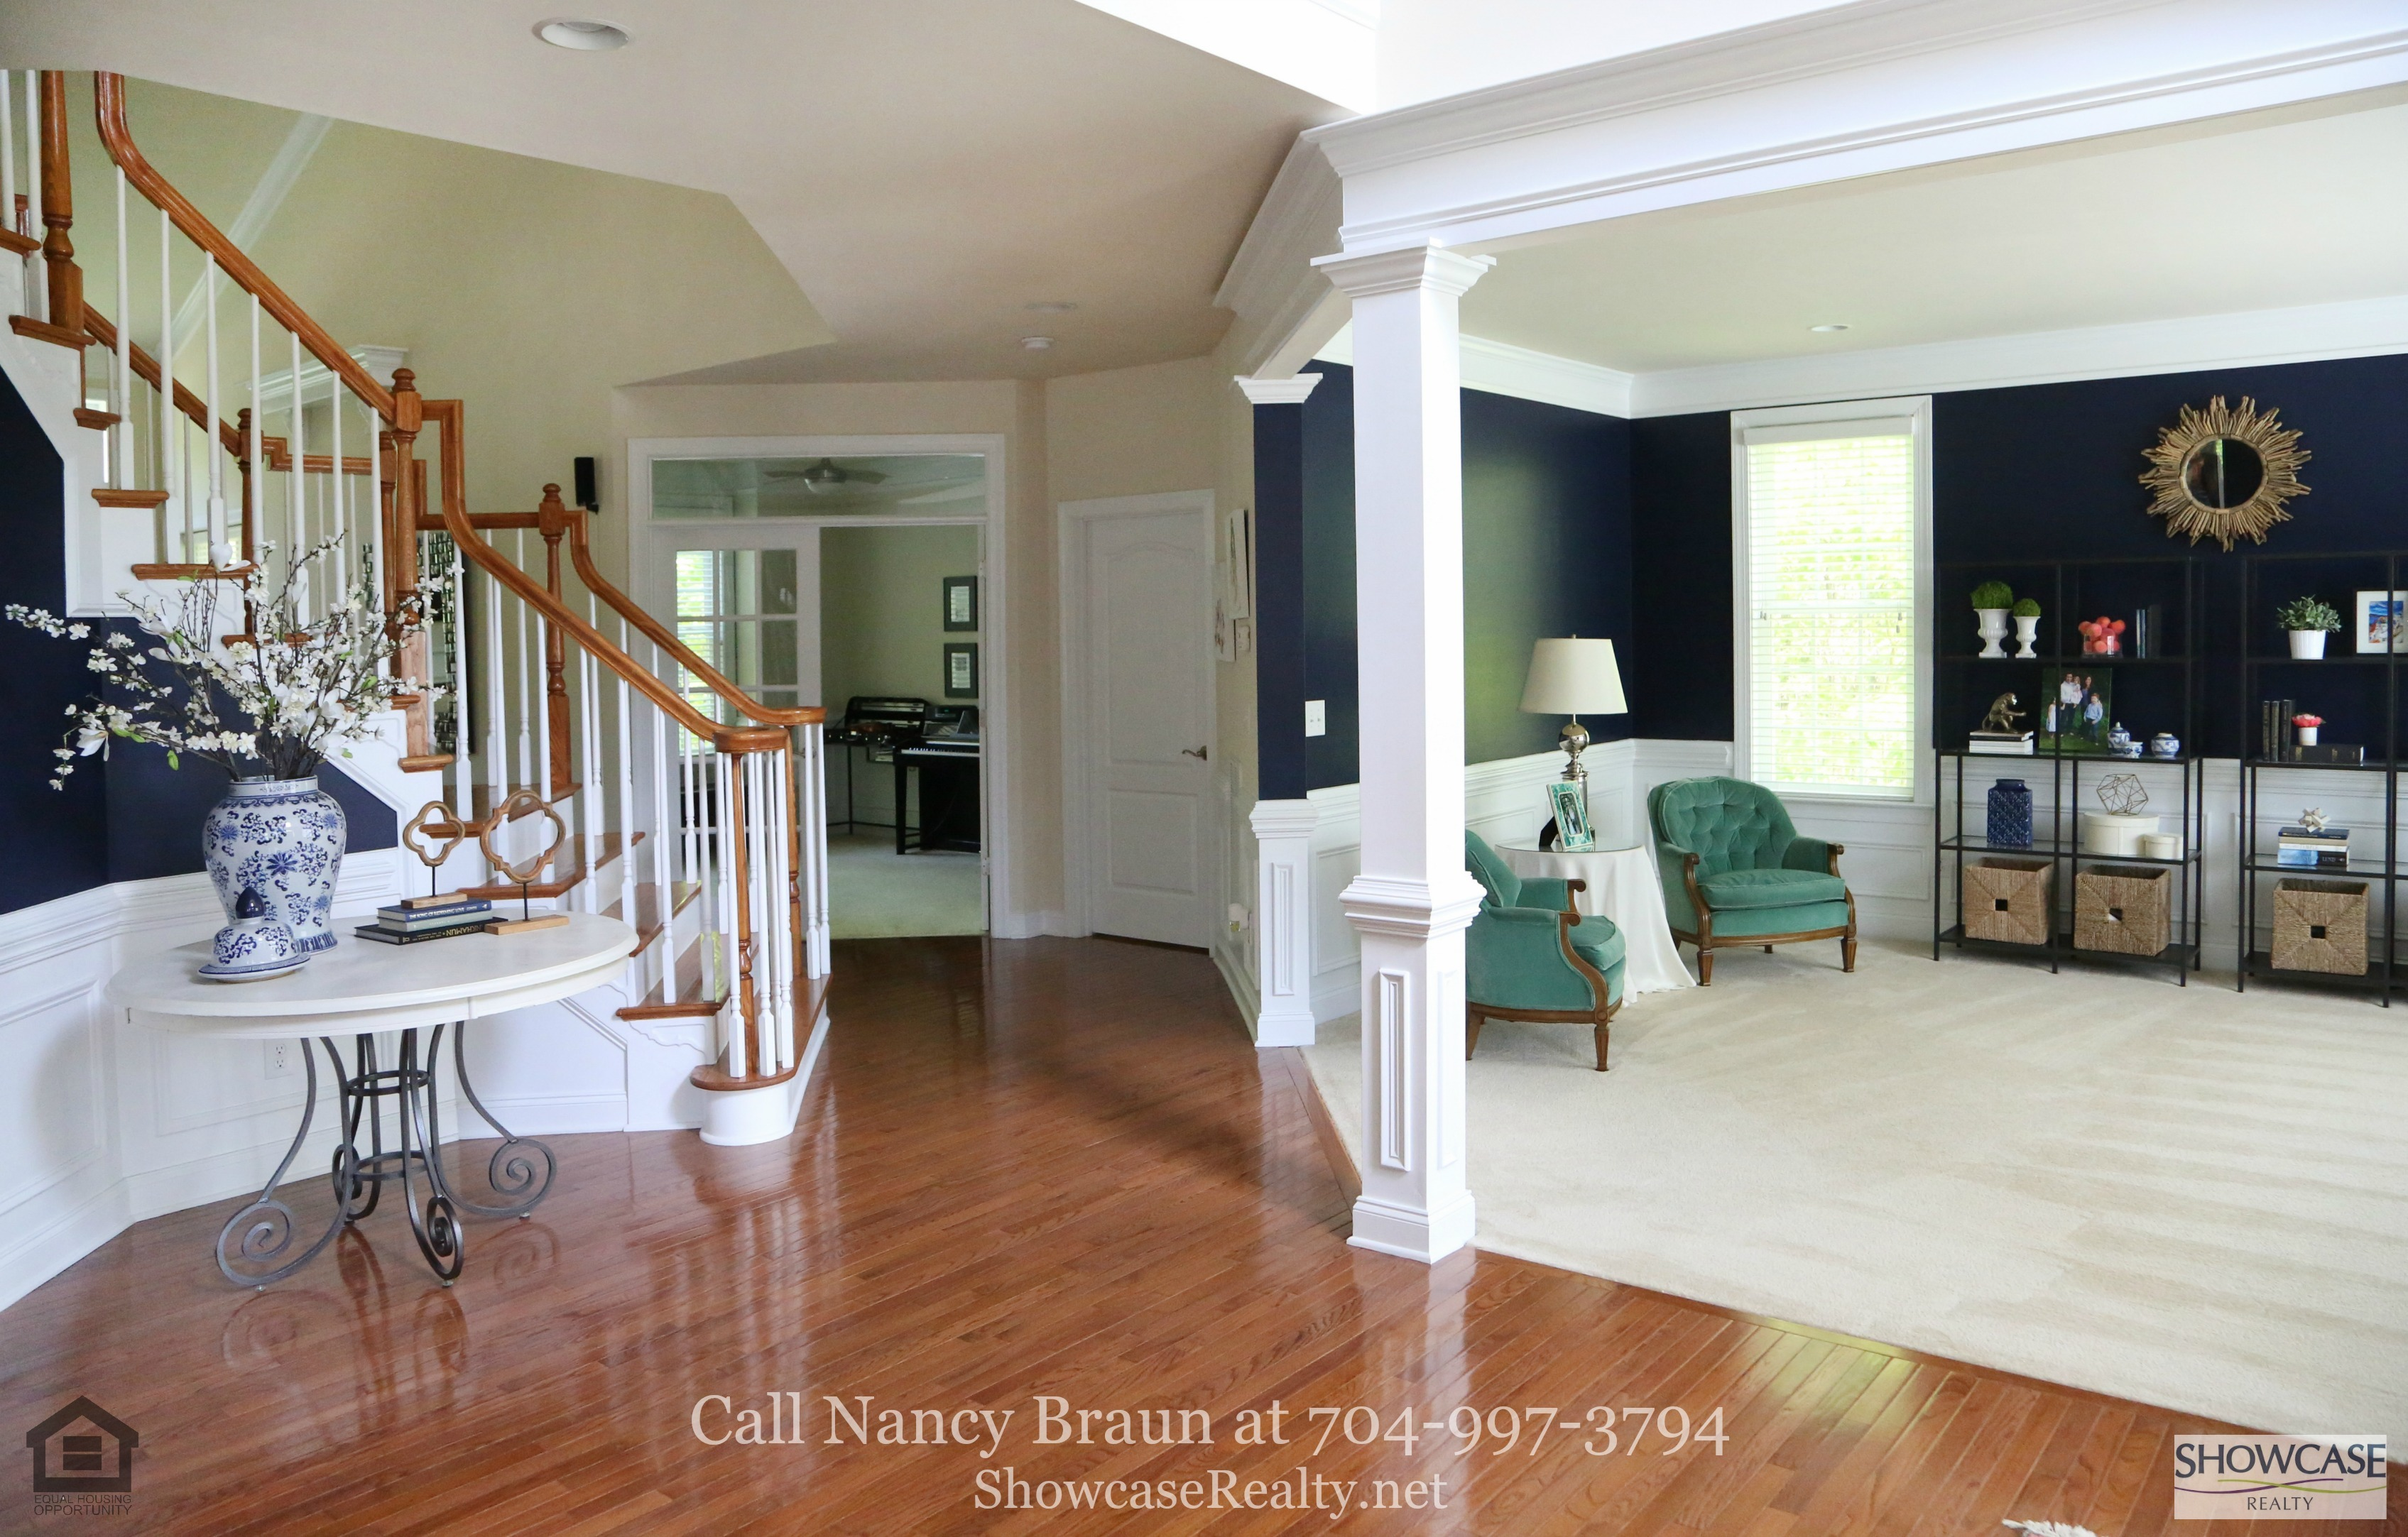 Superieur Weddington NC Homes For Sale   Airy, Bright And Spacious, The Living Room Of